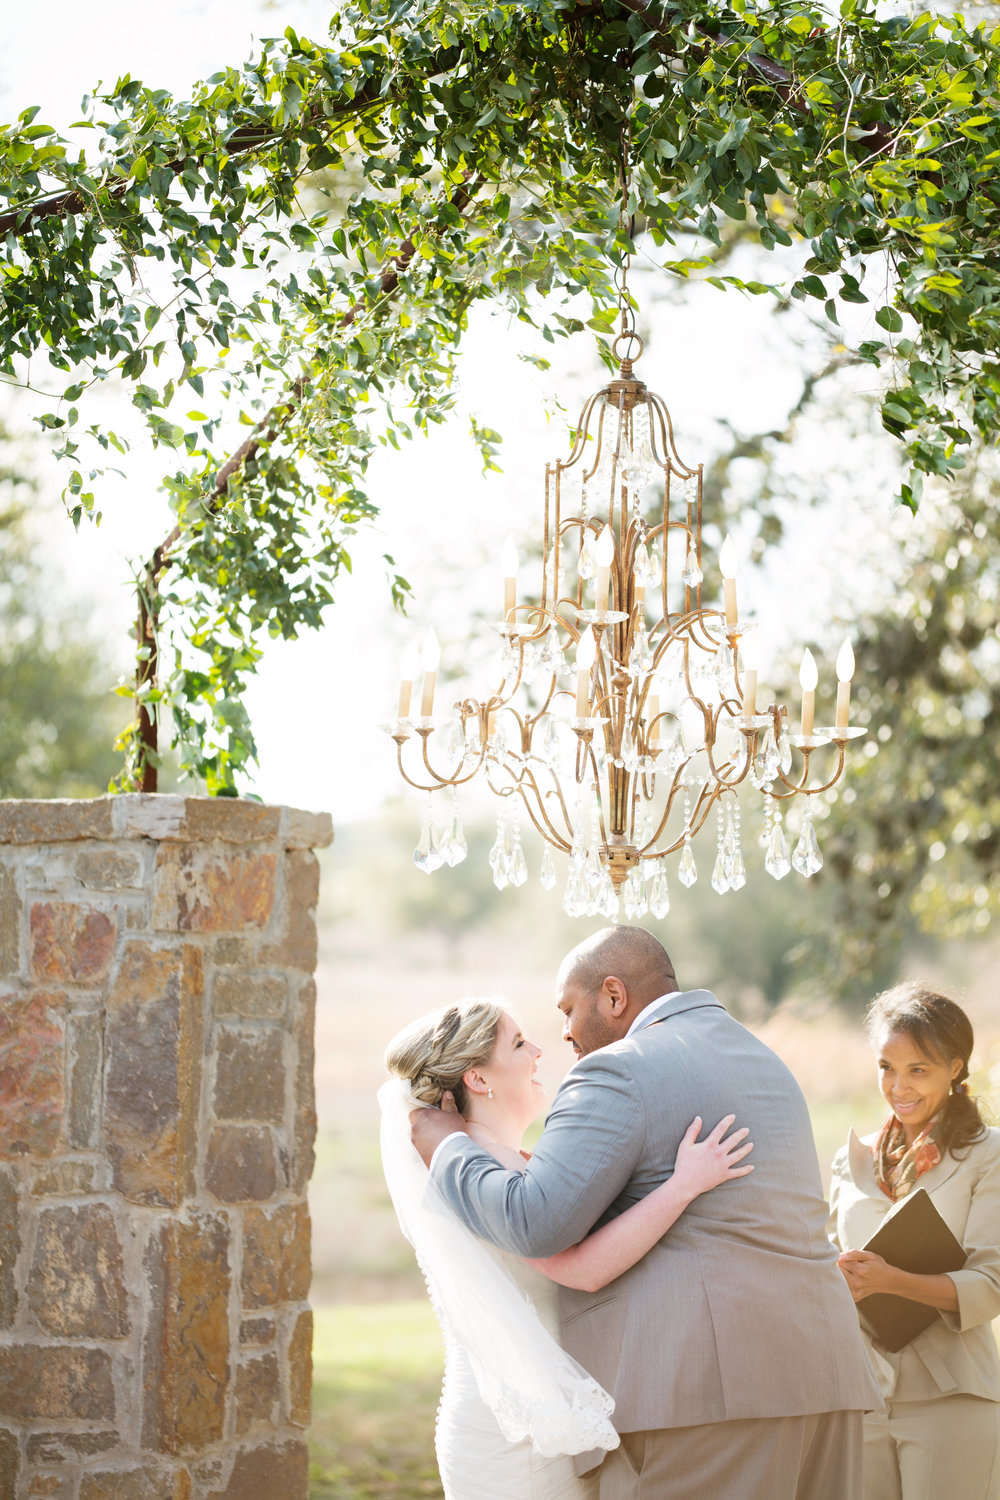 Ma Maison Austin Wedding Venue_ Austin Wedding Planner Heavenly Day Events _ Kristi Wright Austin Wedding Photographer20160306_0158.JPG